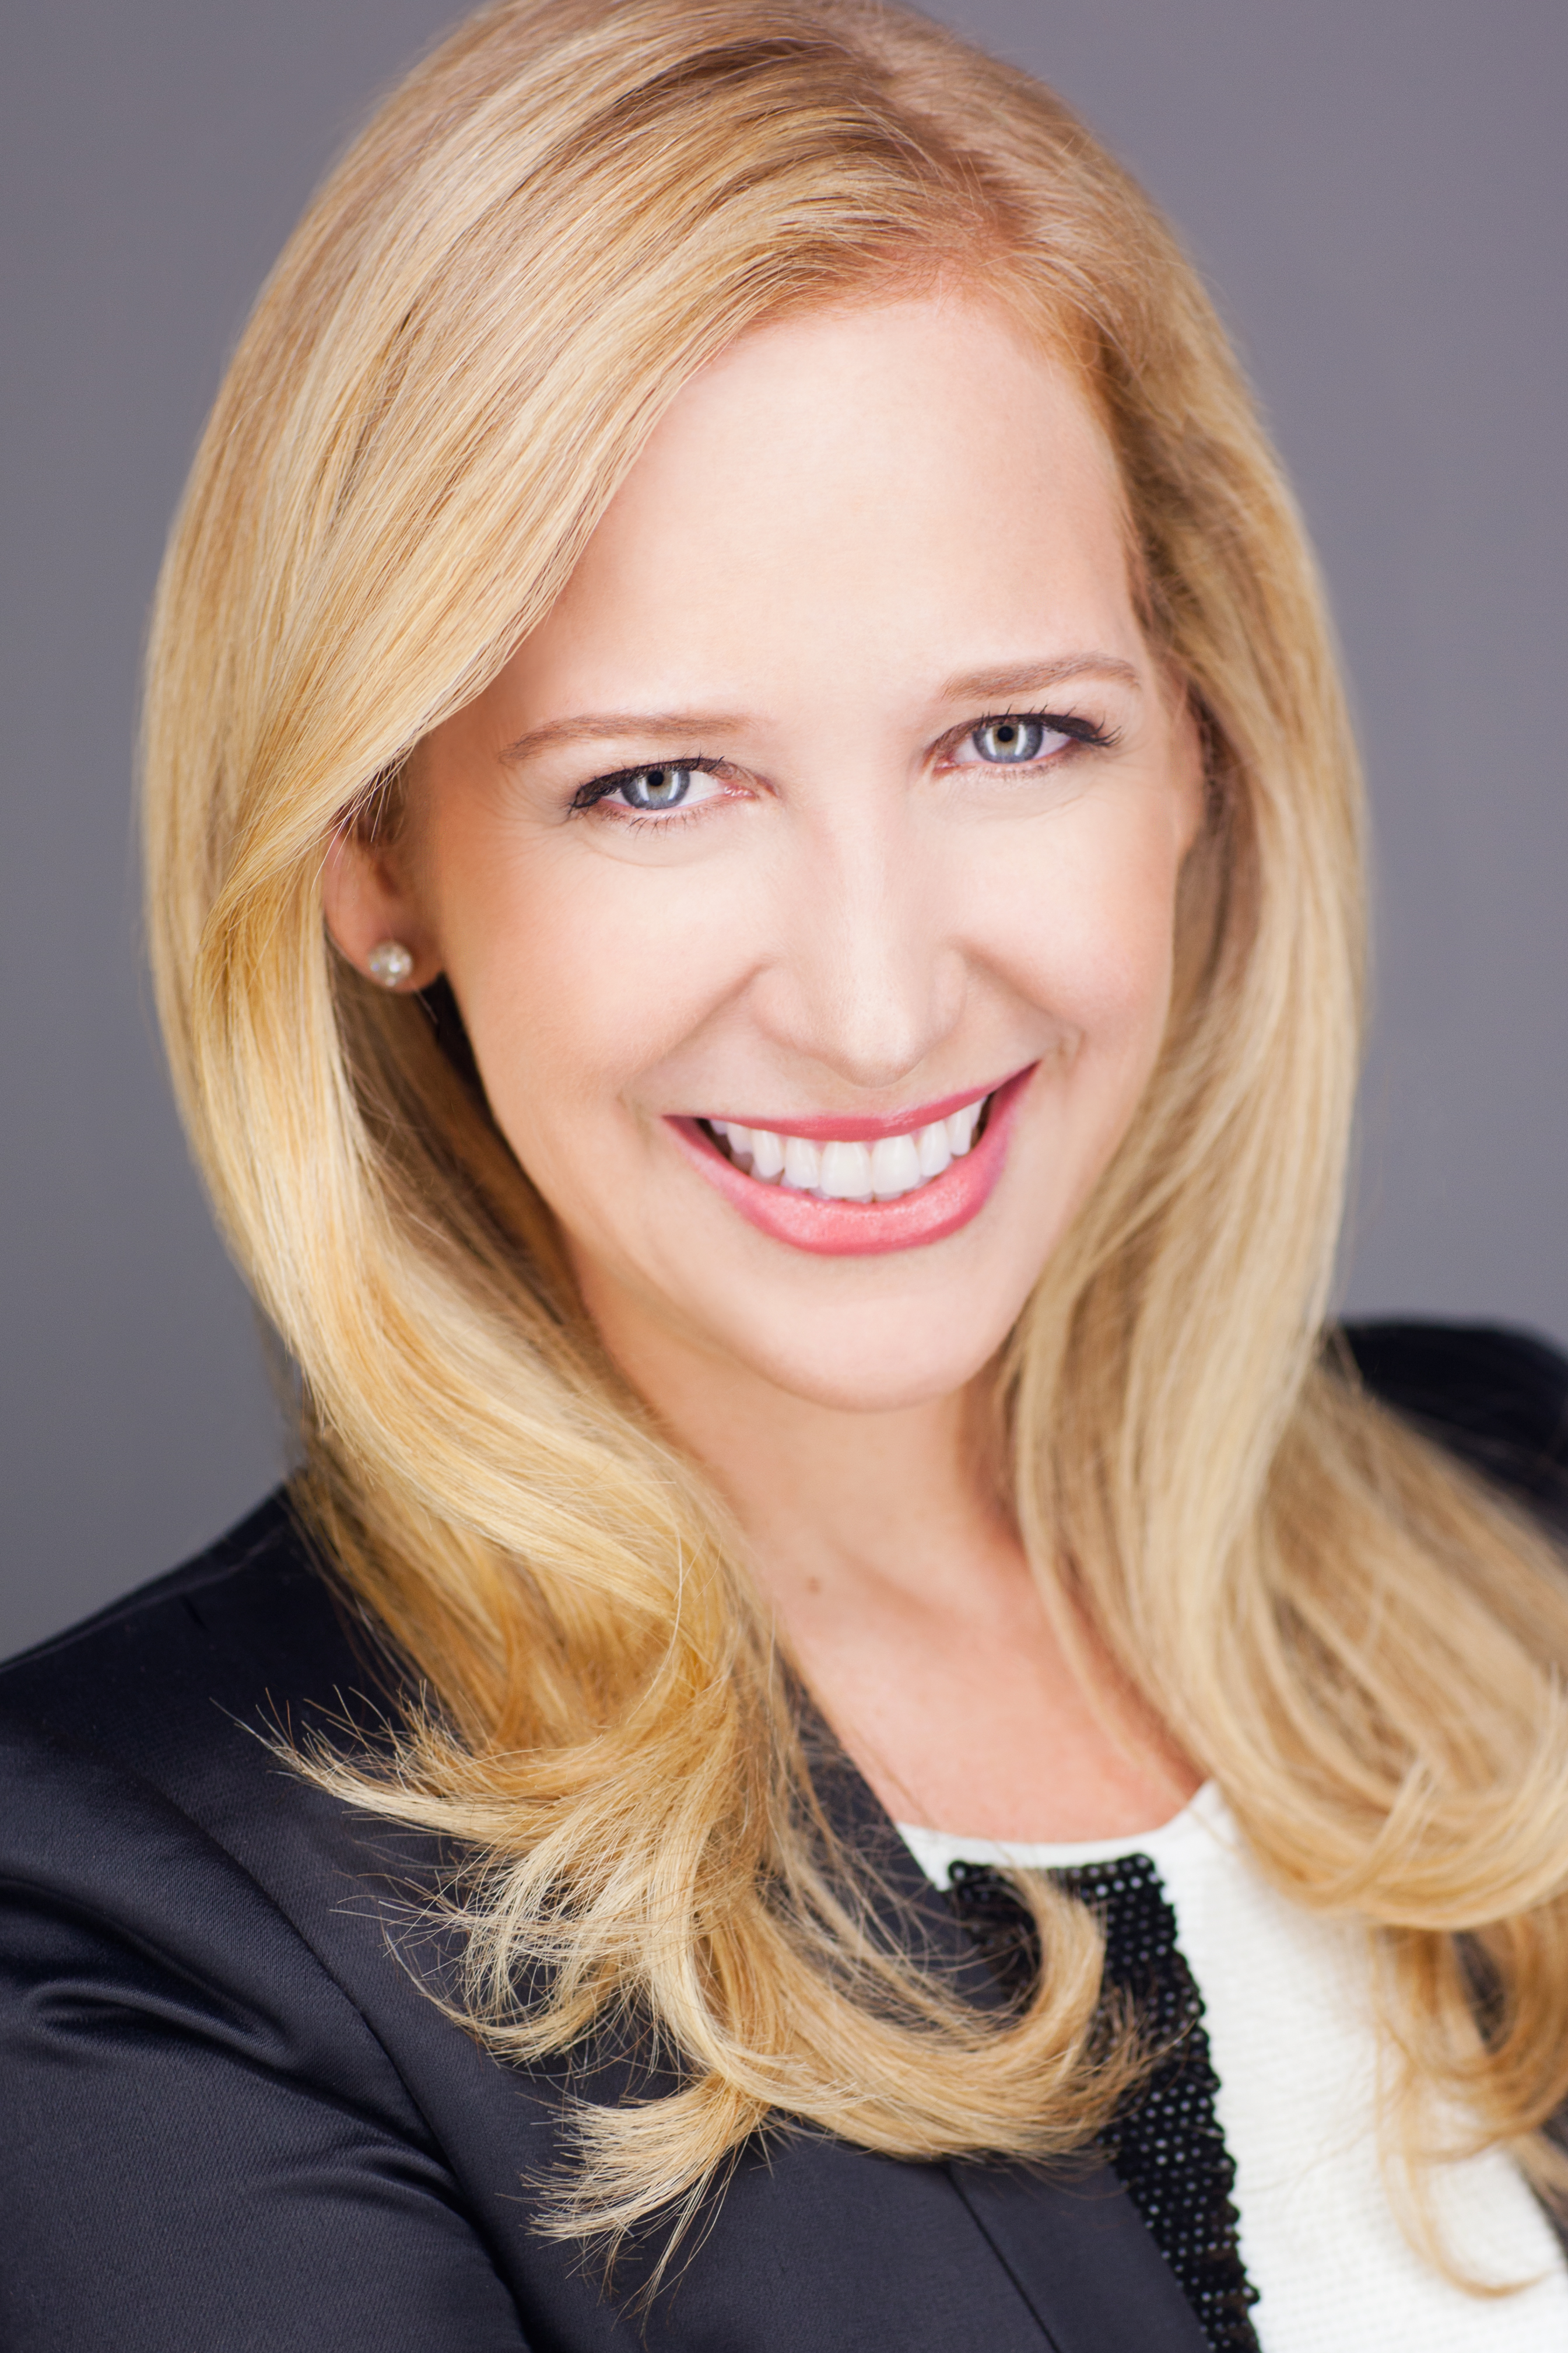 moguls of the world alexandra wilkis wilson the co founder of mogul what inspired your decision to leave investment banking at merrill lynch to pursue a career in the fashion industry